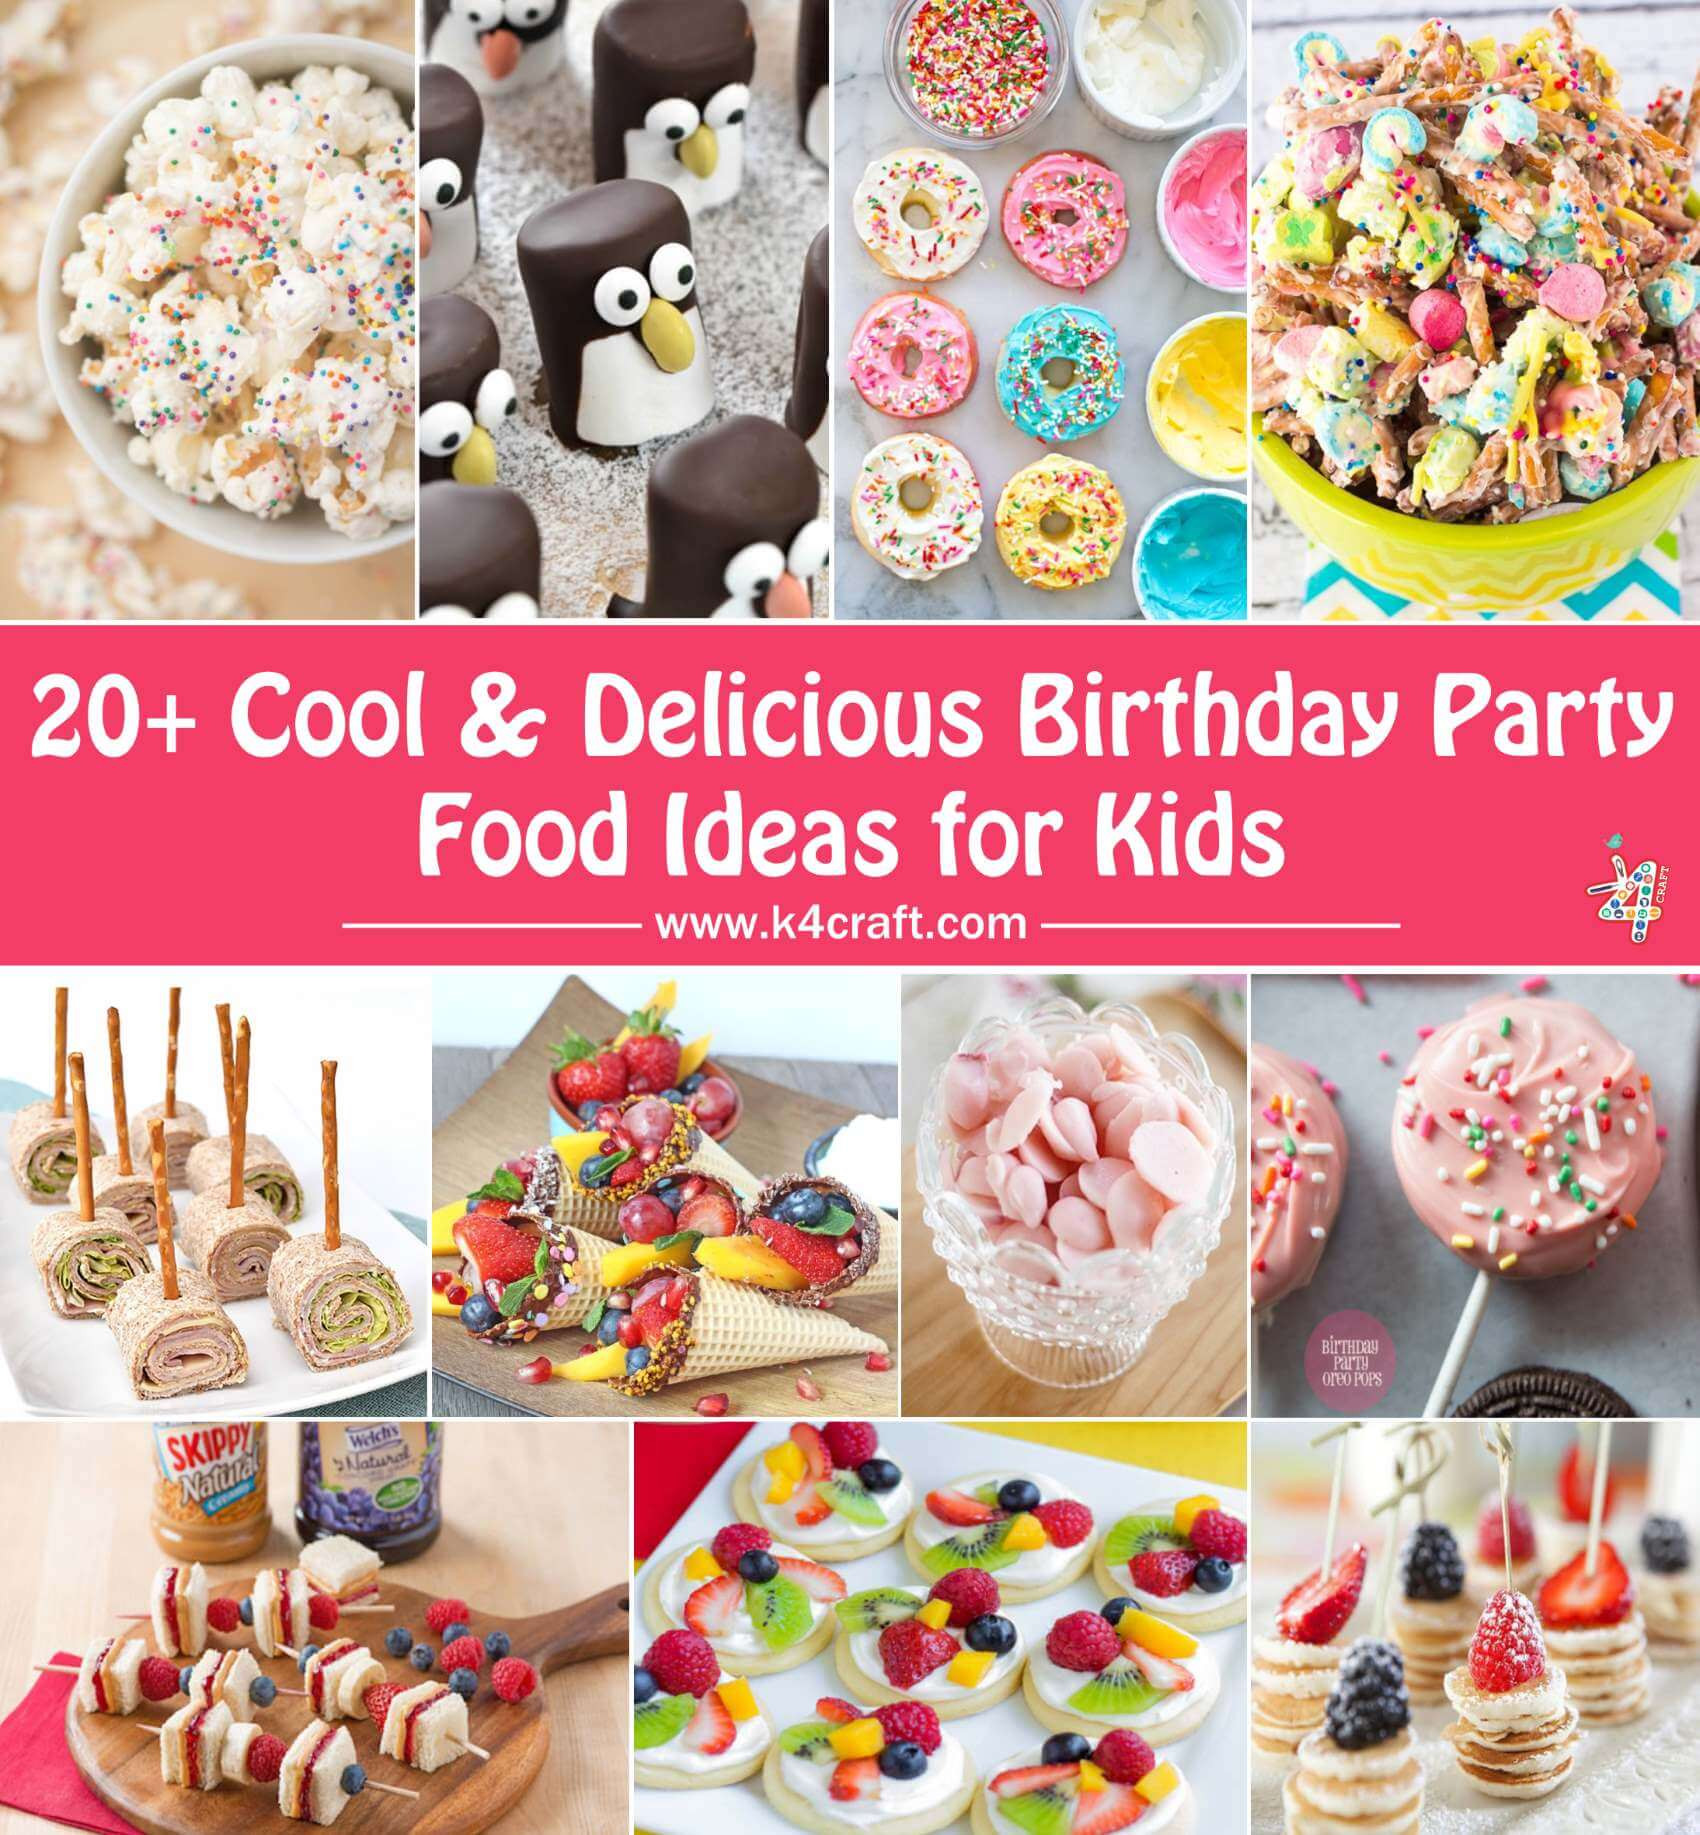 Party Food Ideas For Kids  Cool & Delicious Birthday Party Food Ideas for Kids • K4 Craft